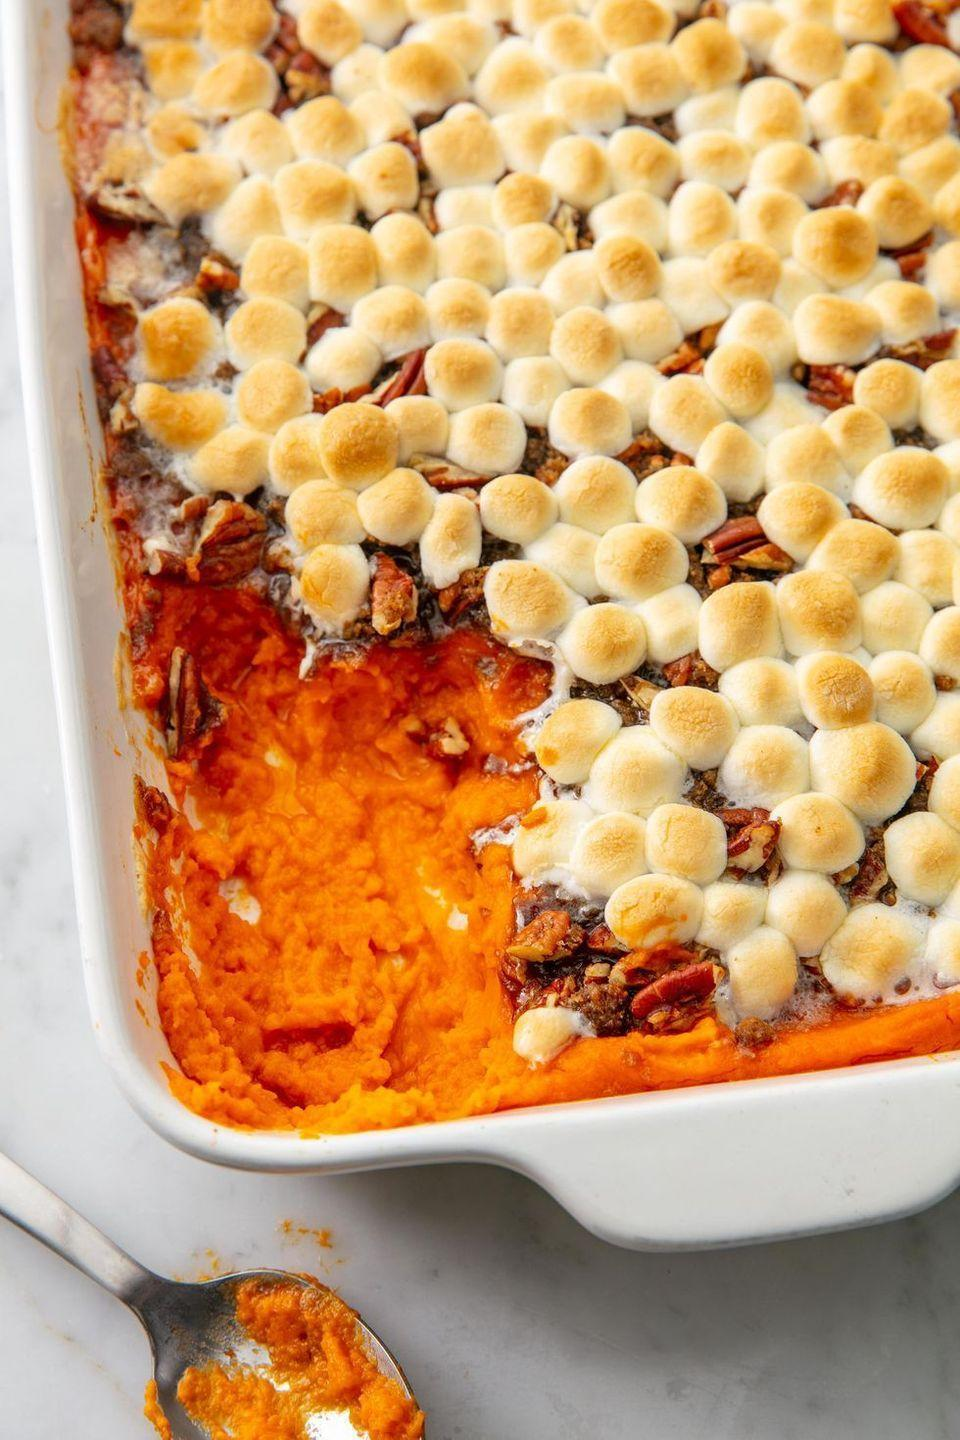 """<p>What is Thanksgiving without sweet potato casserole with mini marshmallows? Just a wasted day, really. Once you try this mini marshmallow recipe, you'll never go back to plain sweet potatoes on Thanksgiving. </p><p><strong><em>Get the recipe at <a href=""""https://www.delish.com/cooking/recipe-ideas/a21960705/best-sweet-potato-casserole-marshmallows-pecans-recipe/"""" rel=""""nofollow noopener"""" target=""""_blank"""" data-ylk=""""slk:Delish"""" class=""""link rapid-noclick-resp"""">Delish</a>. </em></strong></p>"""